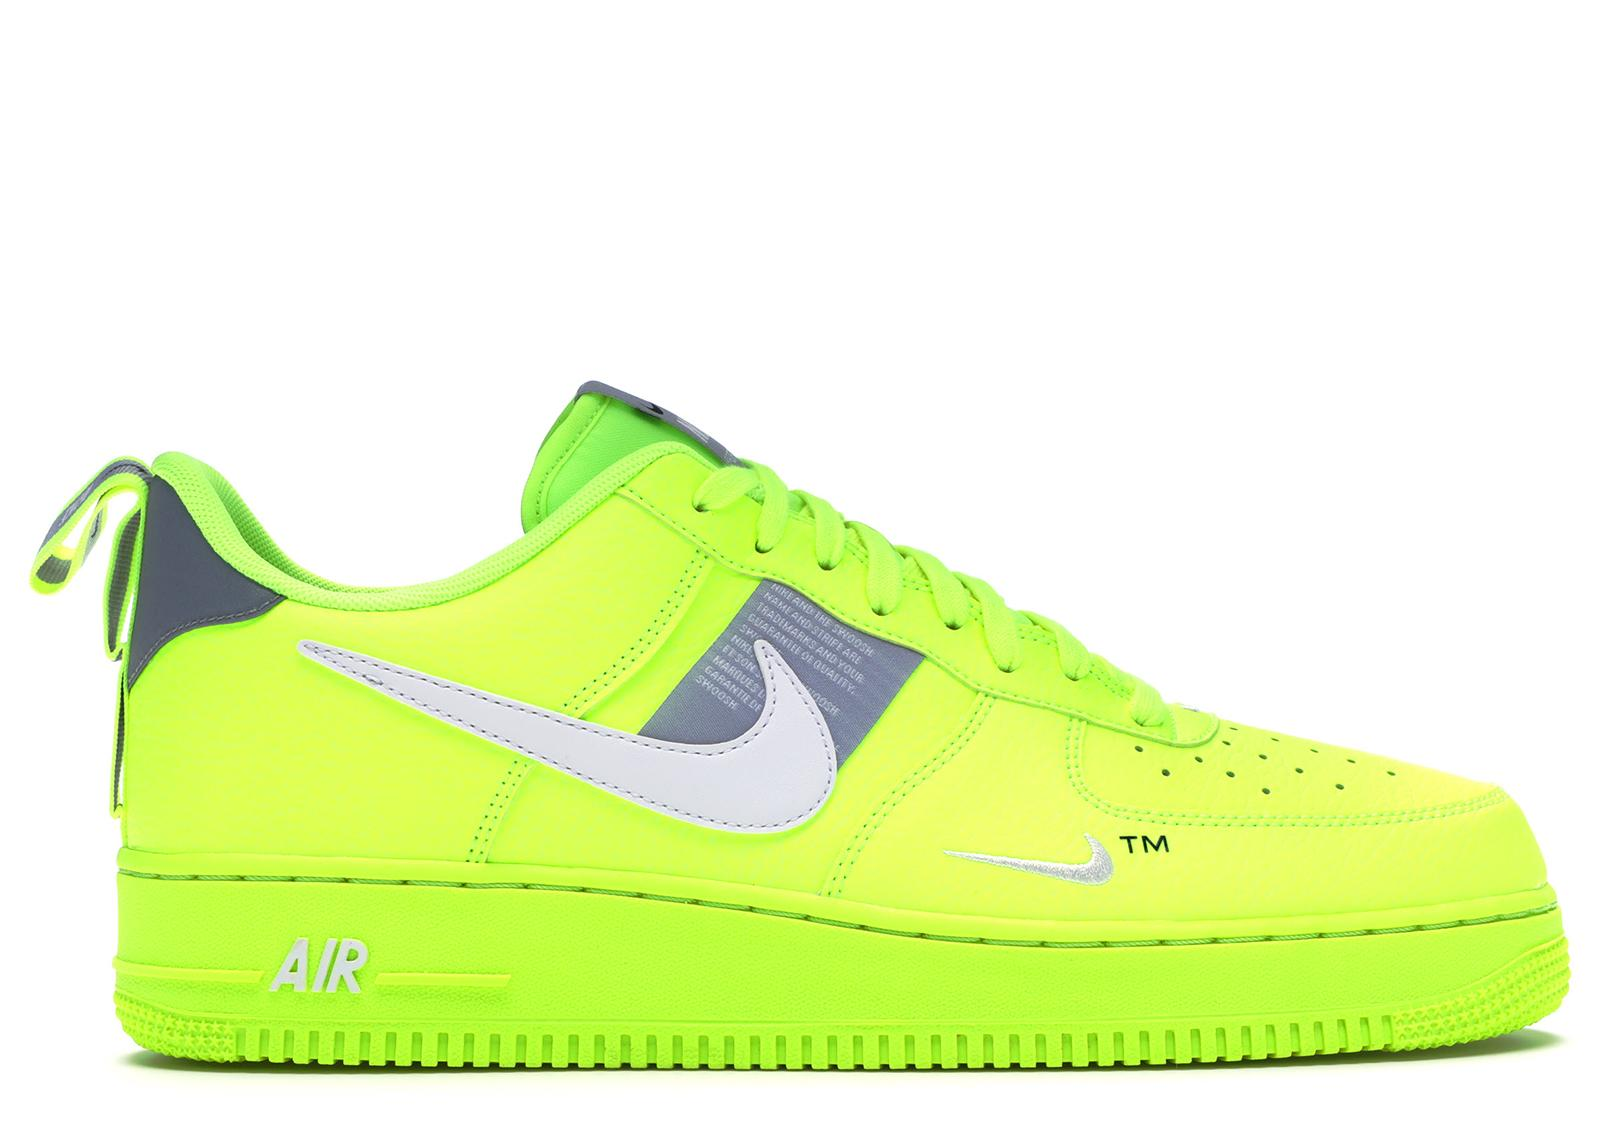 Nike Air Force 1 Utility Volt 2 in